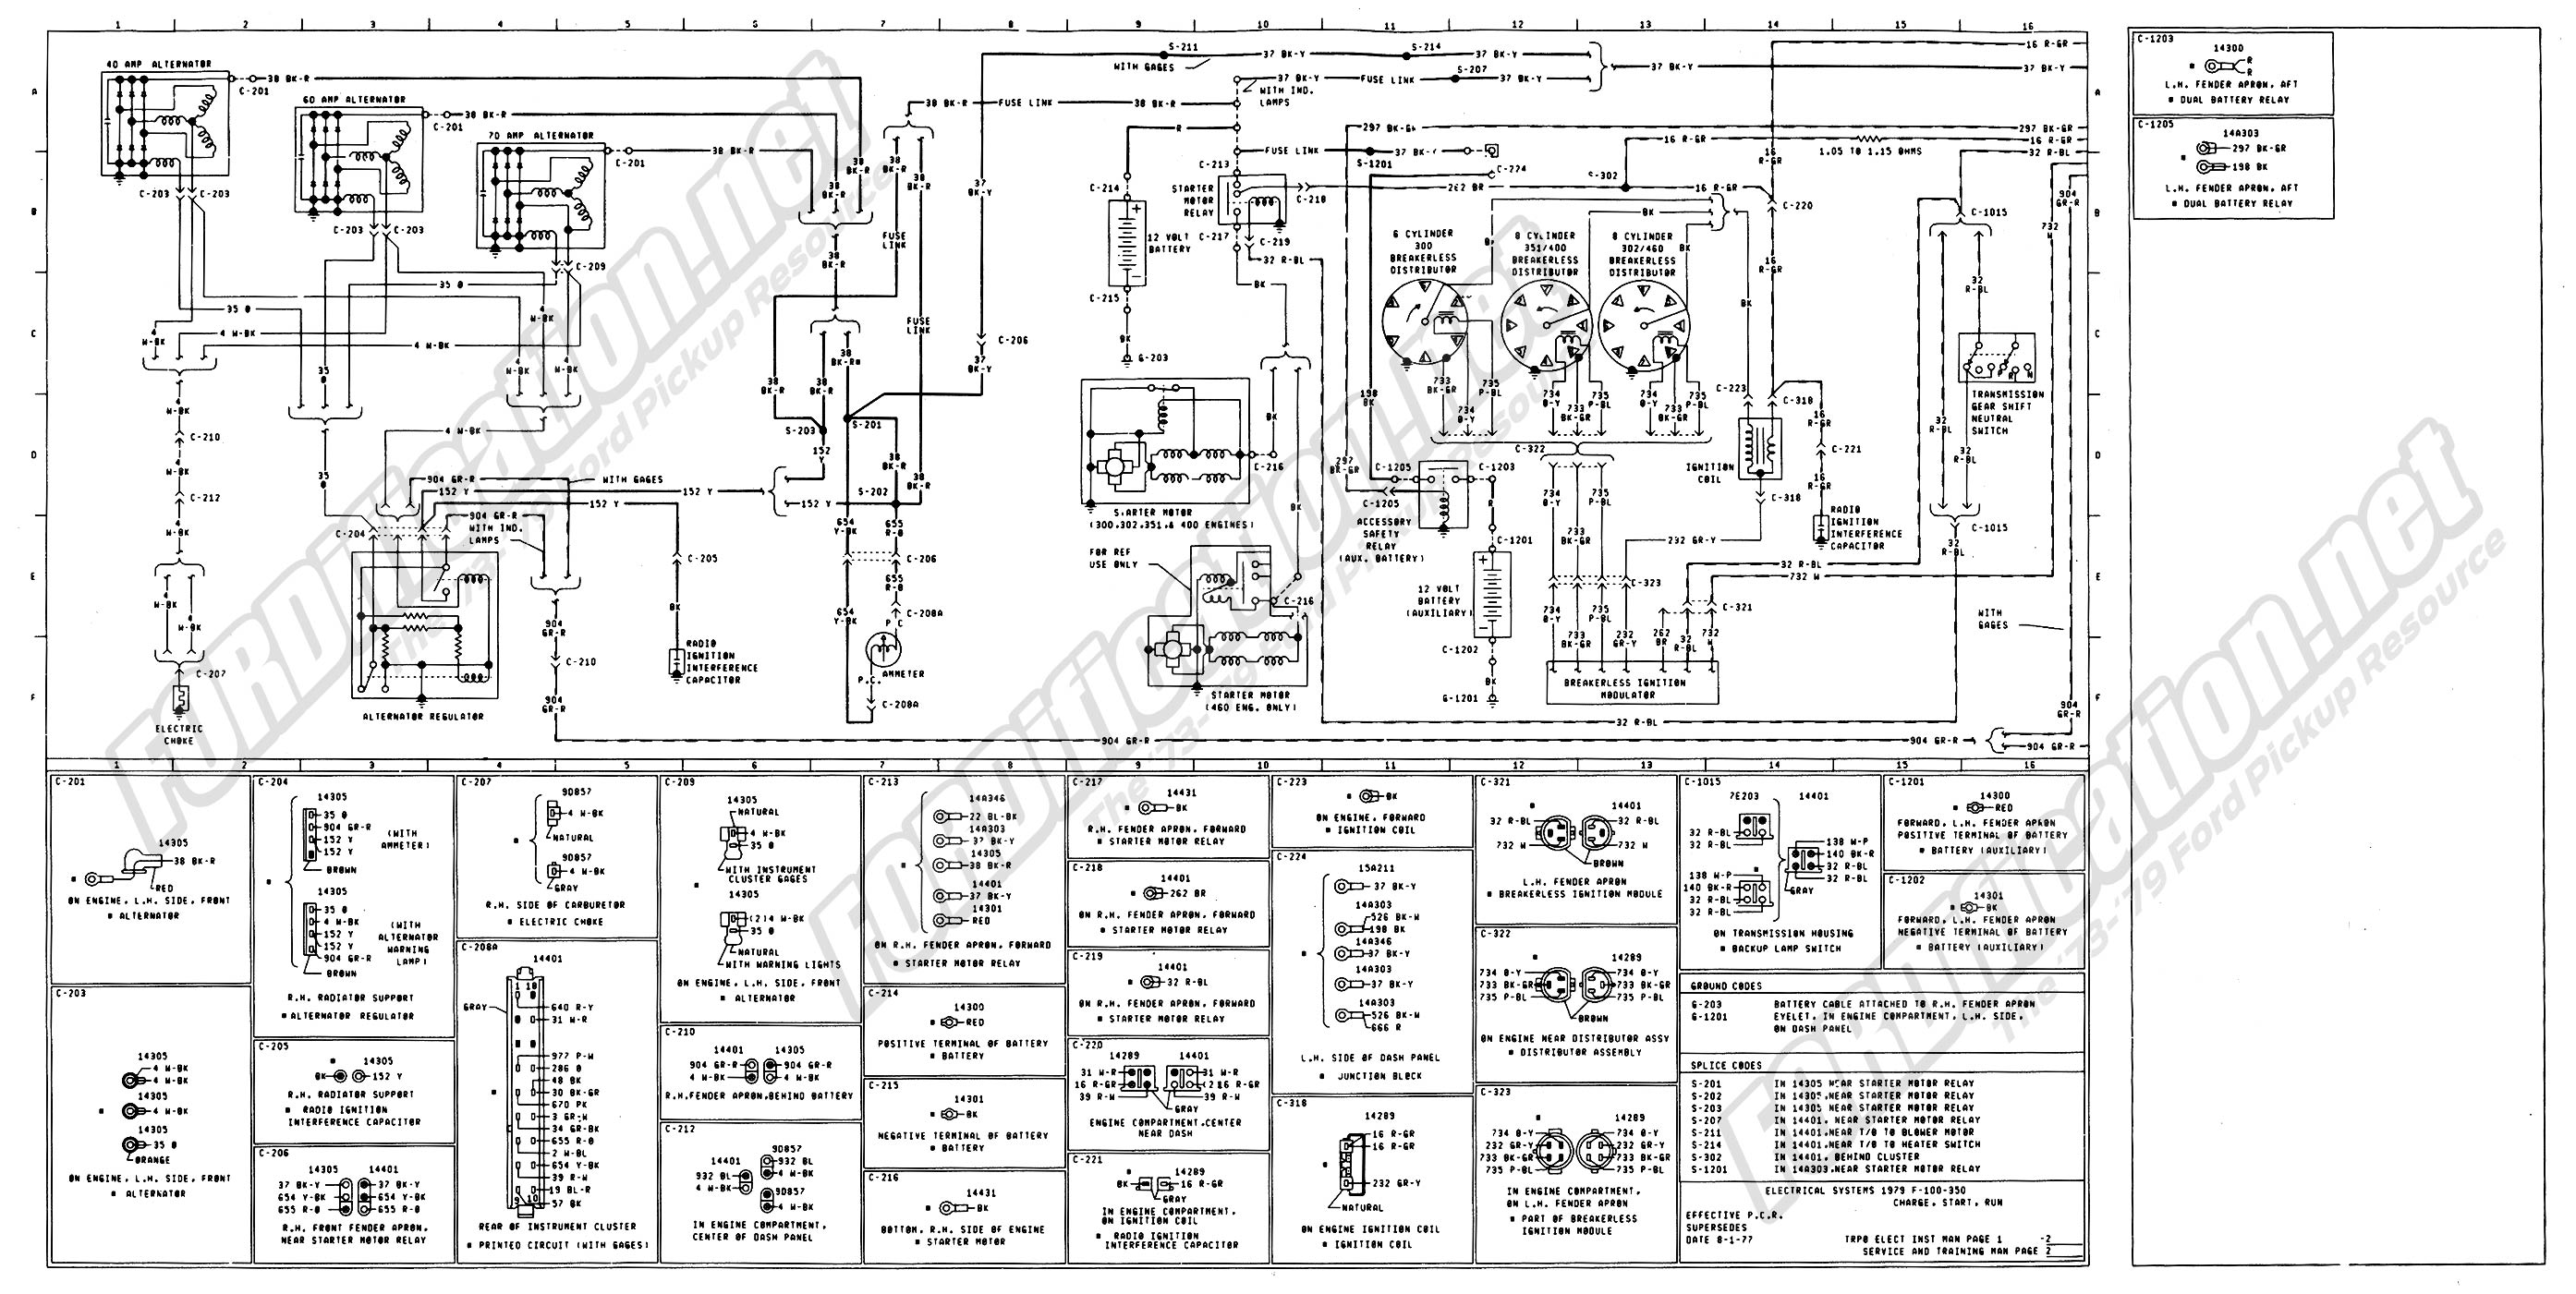 wiring_79master_2of9 1973 1979 ford truck wiring diagrams & schematics fordification net wiring diagram for dummies at crackthecode.co